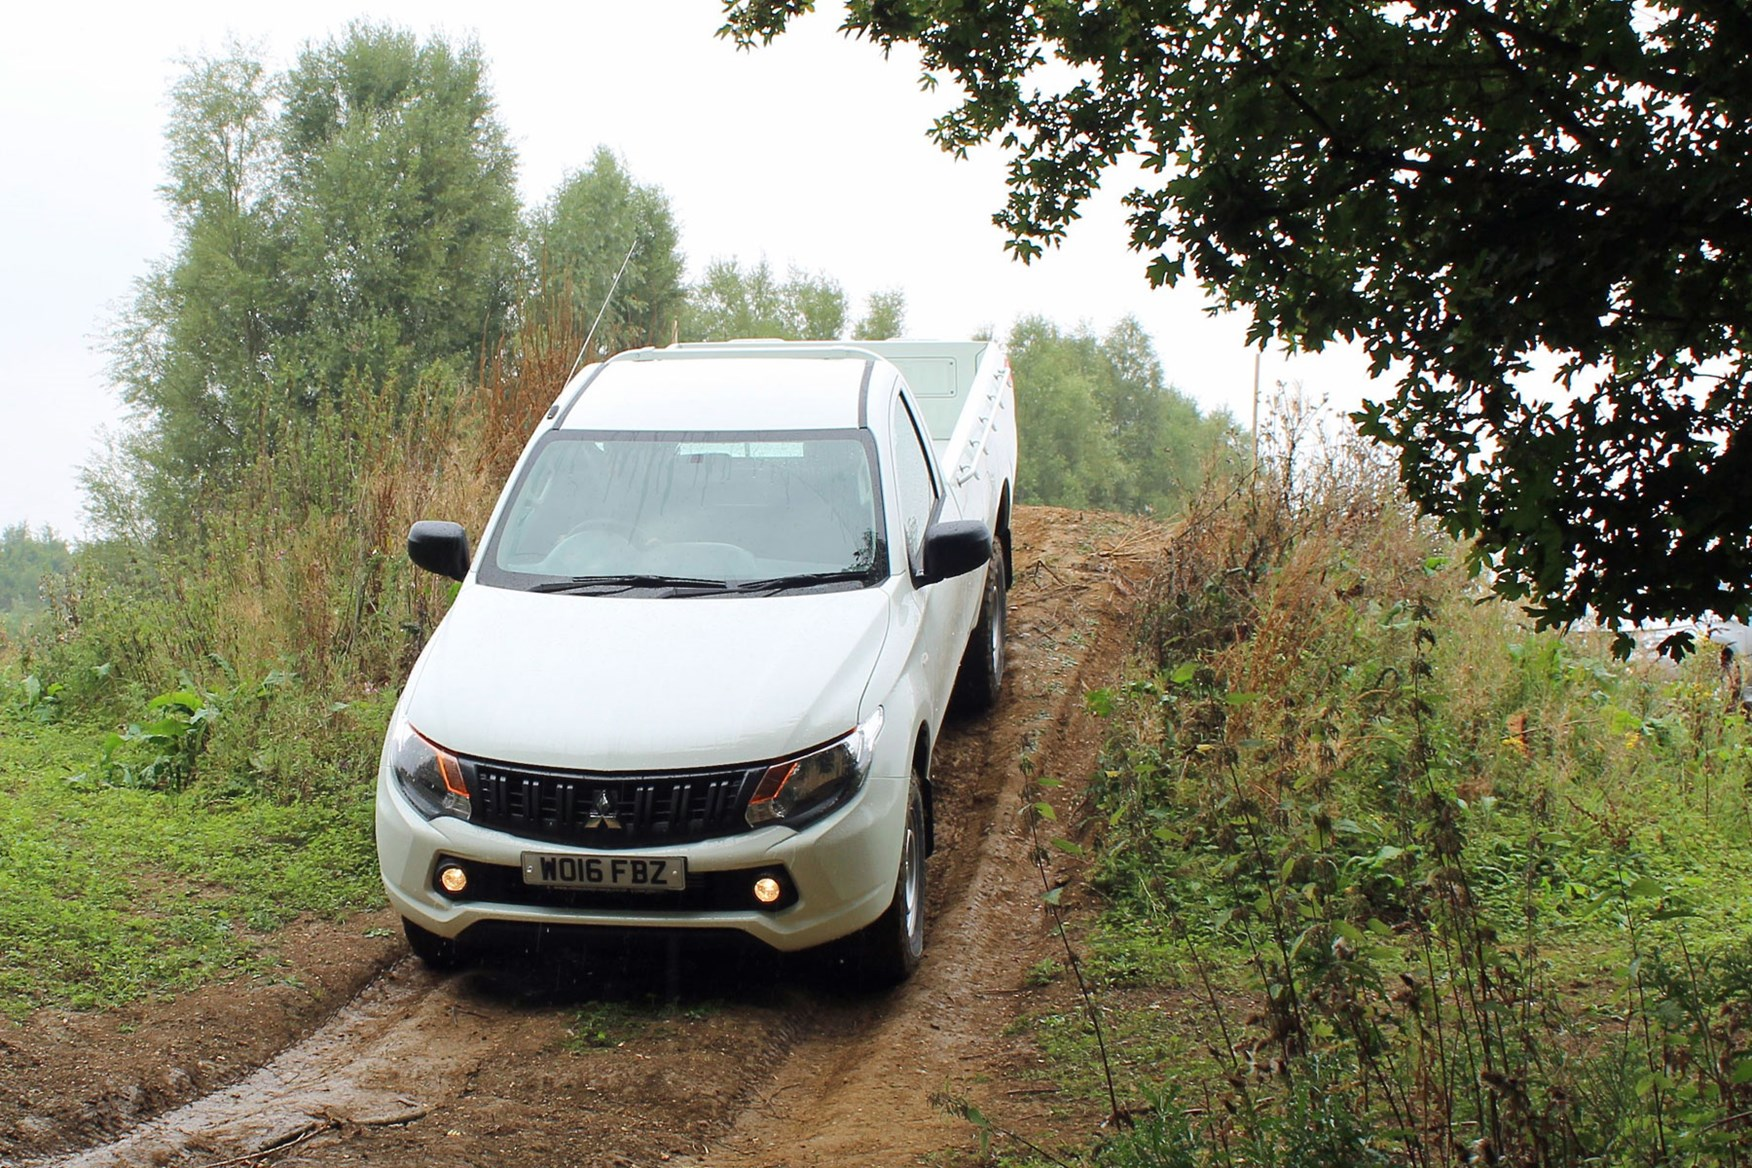 Mitsubishi L200 4Life Single Cab review - front view, driving down slope off-road, white